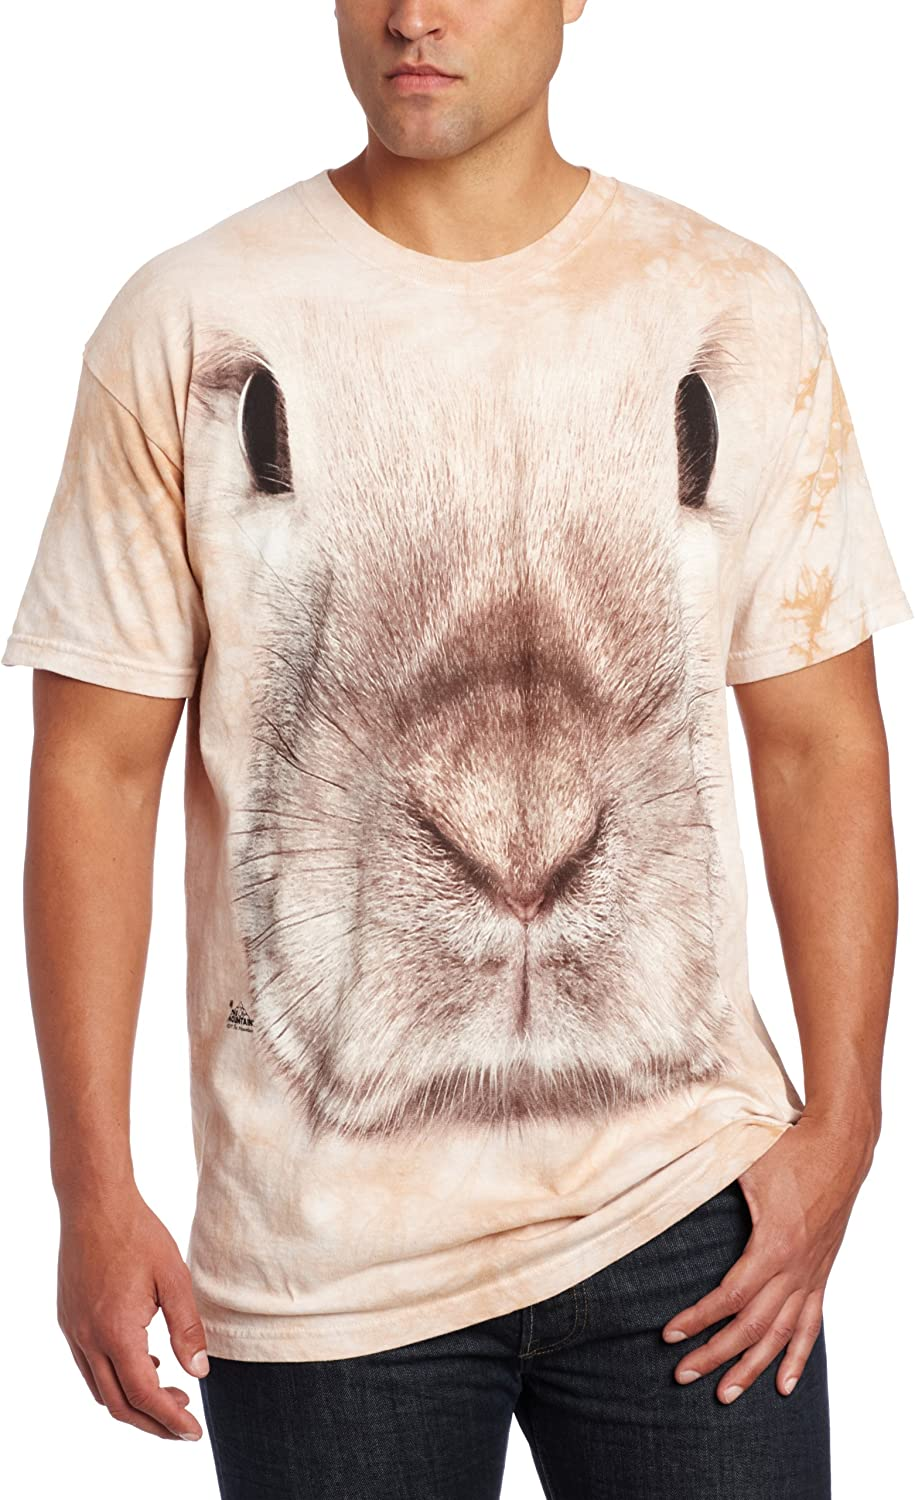 Special price for a limited time The Mountain Super-cheap Men's Face T-Shirt Bunny